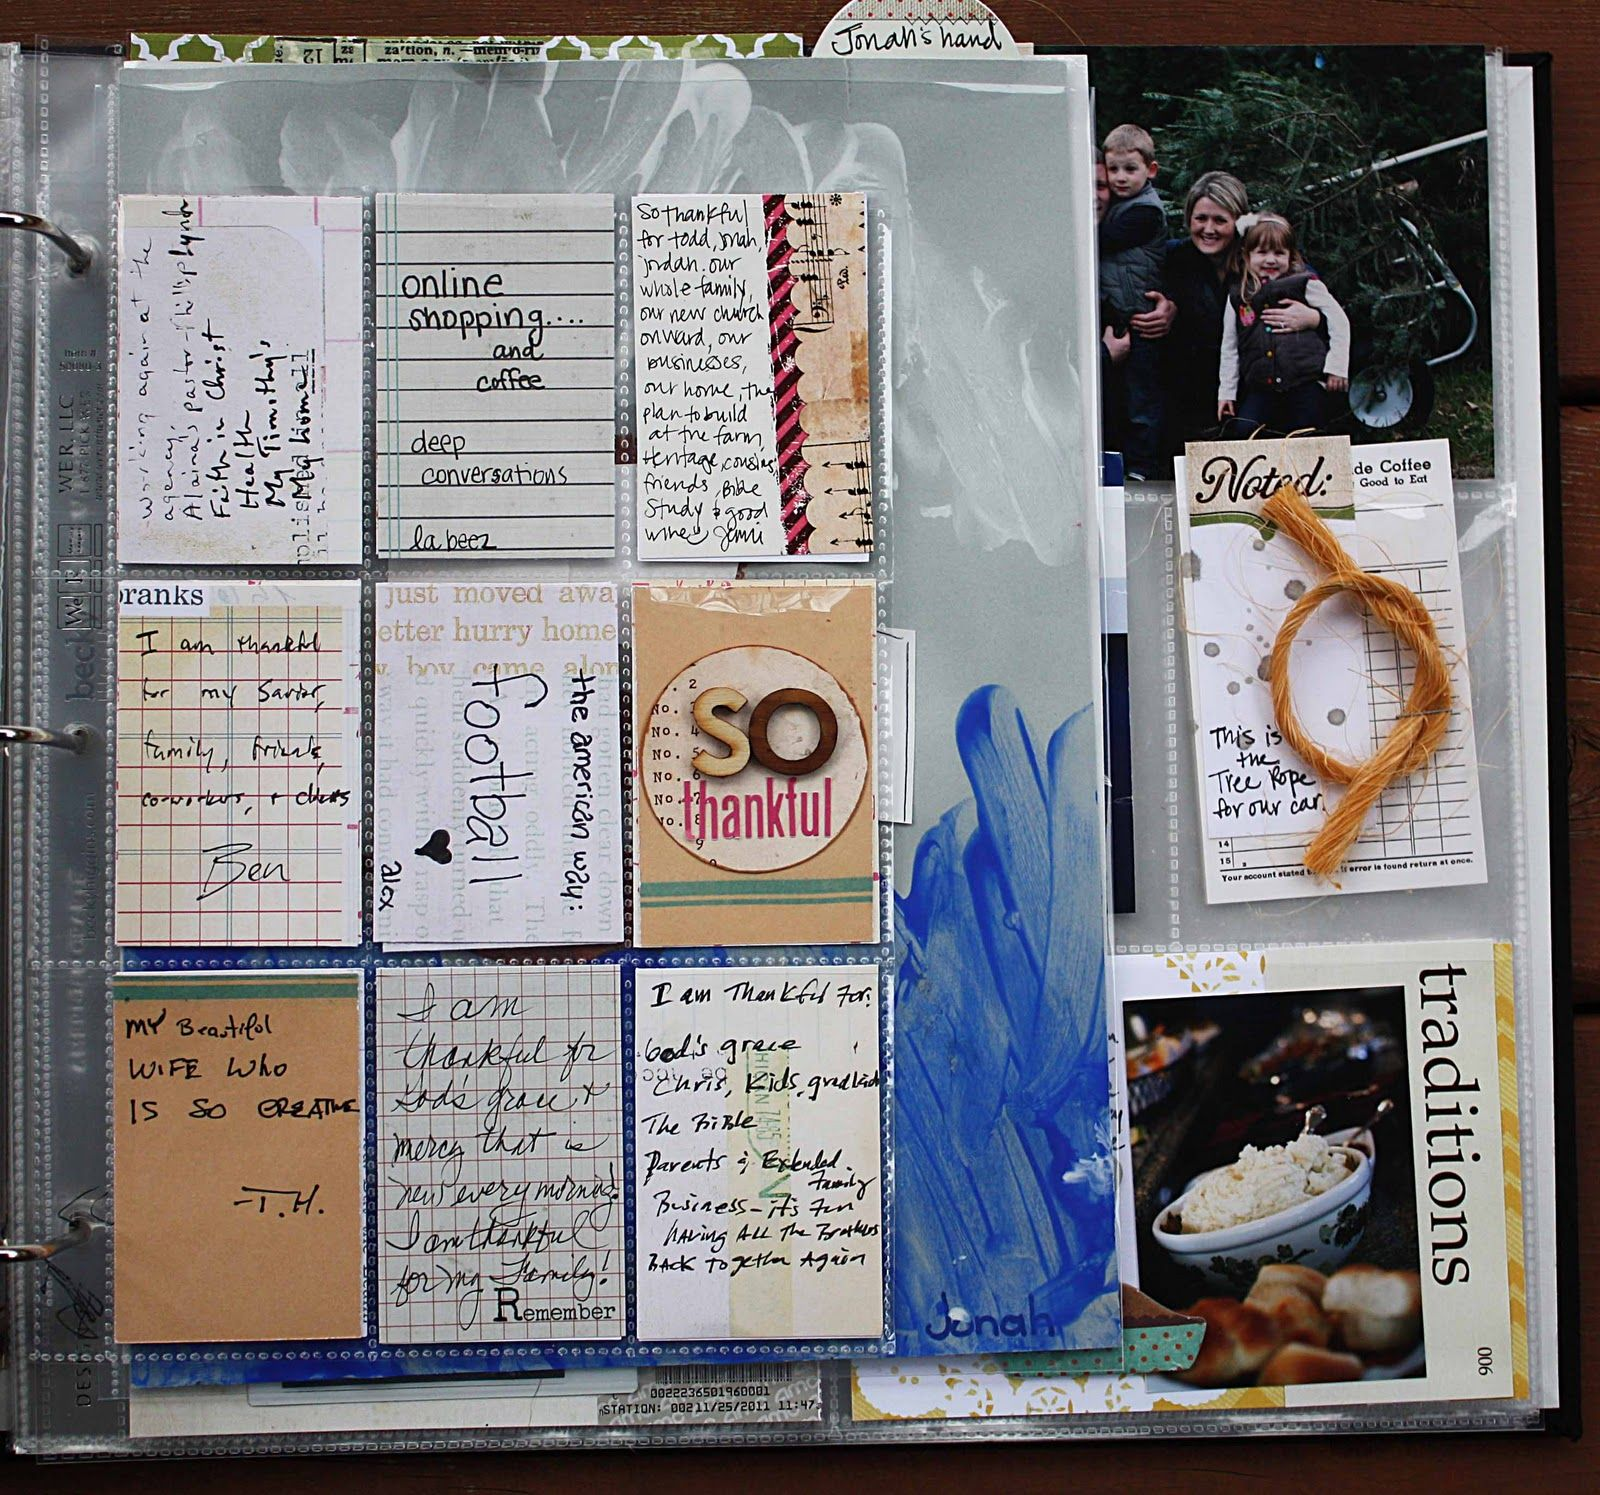 At Thanksgiving time, give family members a journal card to record their blessings in their own handwriting.  Include as a special (baseball card sleeve) insert page.